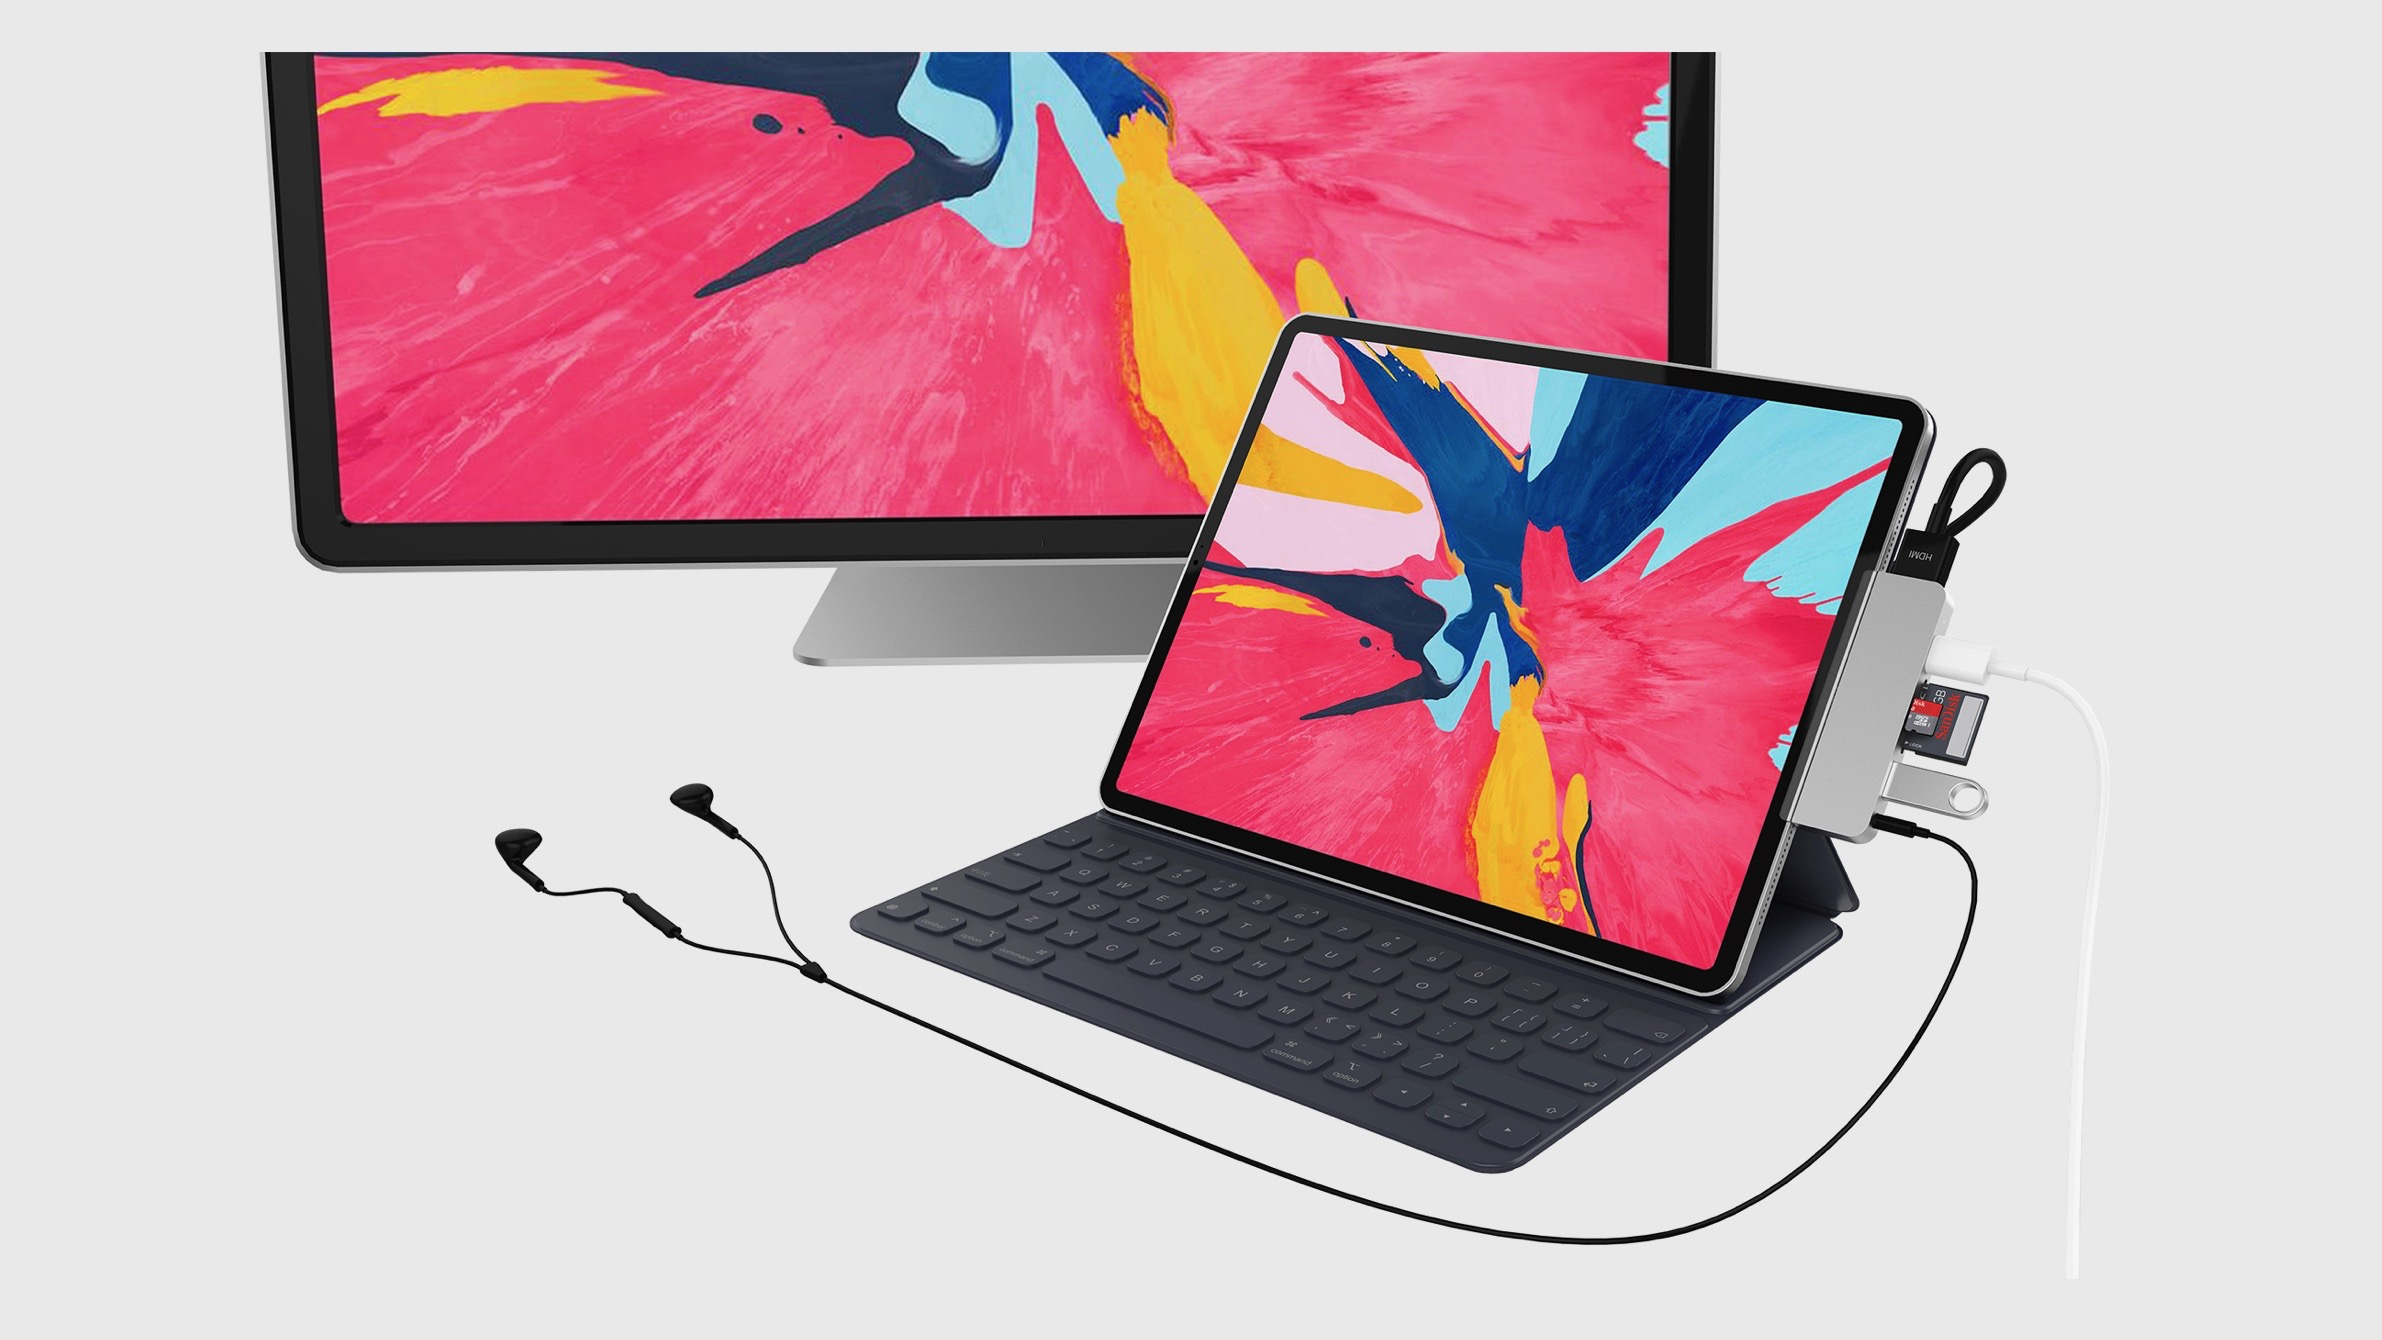 [Update: Now available at 50% off] Hyper unveils the first iPad Pro USB-C hub with HDMI, USB-A, headphone jack, SD slot, more